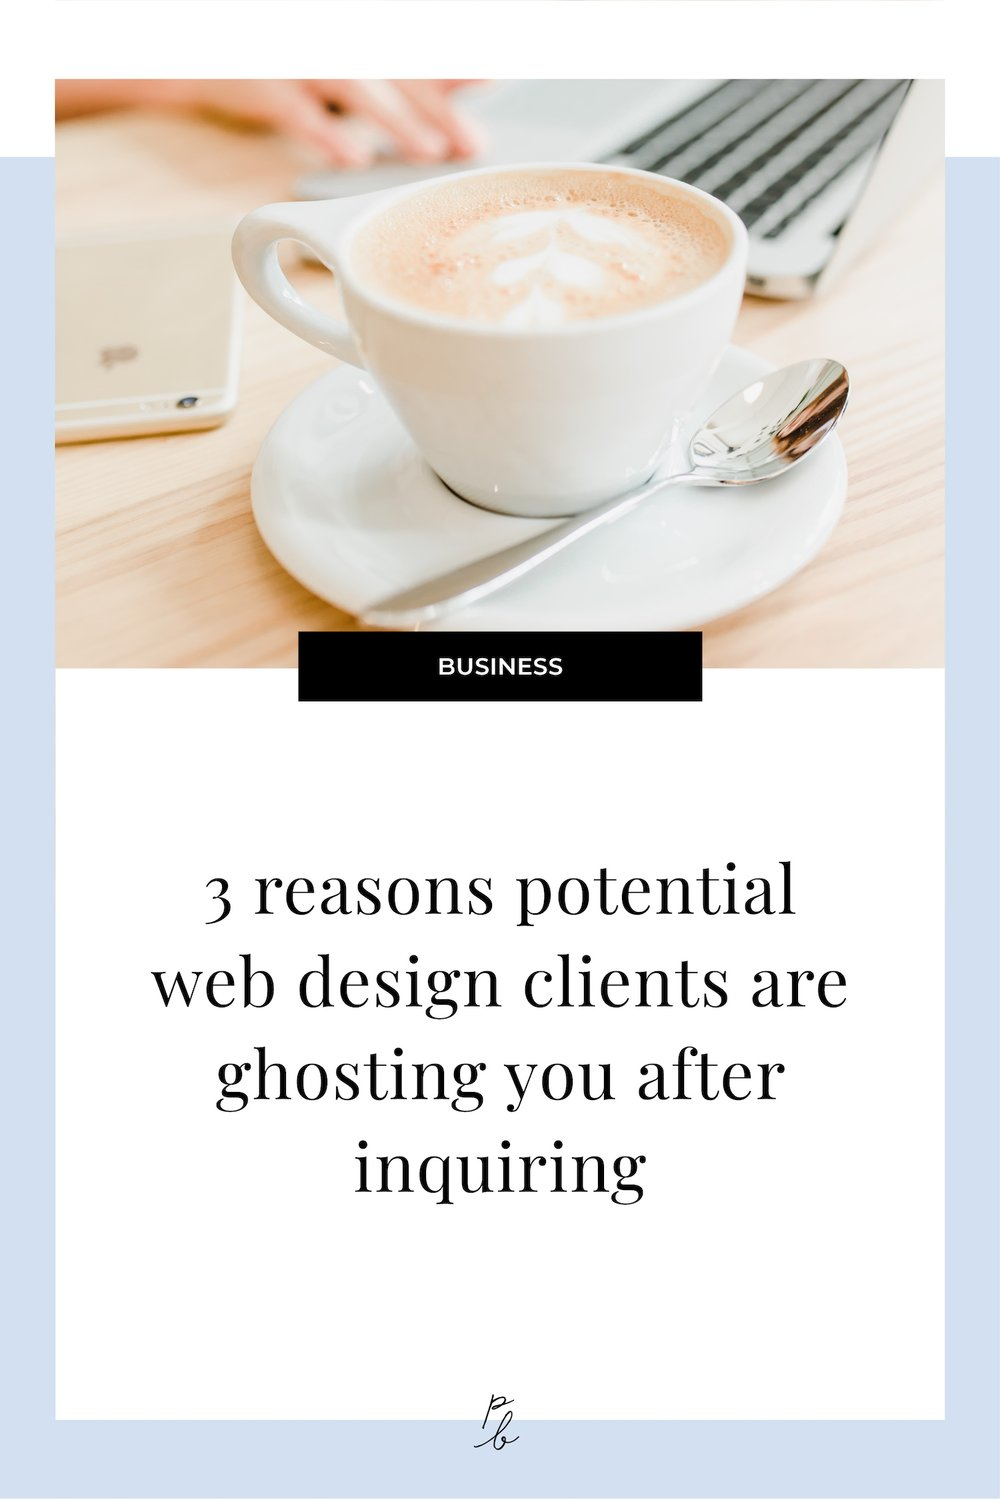 3 reasons potential web design clients are ghosting you after inquiring.jpg